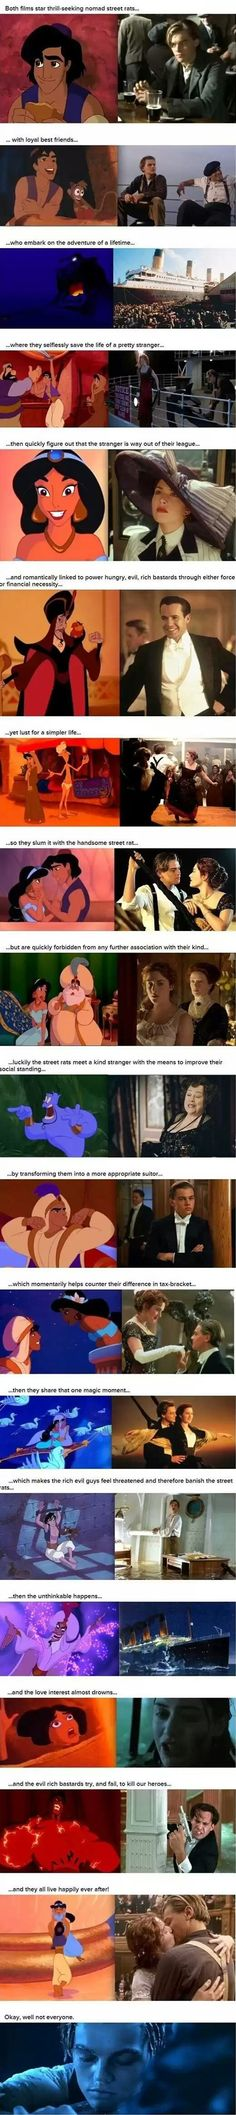 Proof that Aladdin and Titanic are basically the same movie - Imgur